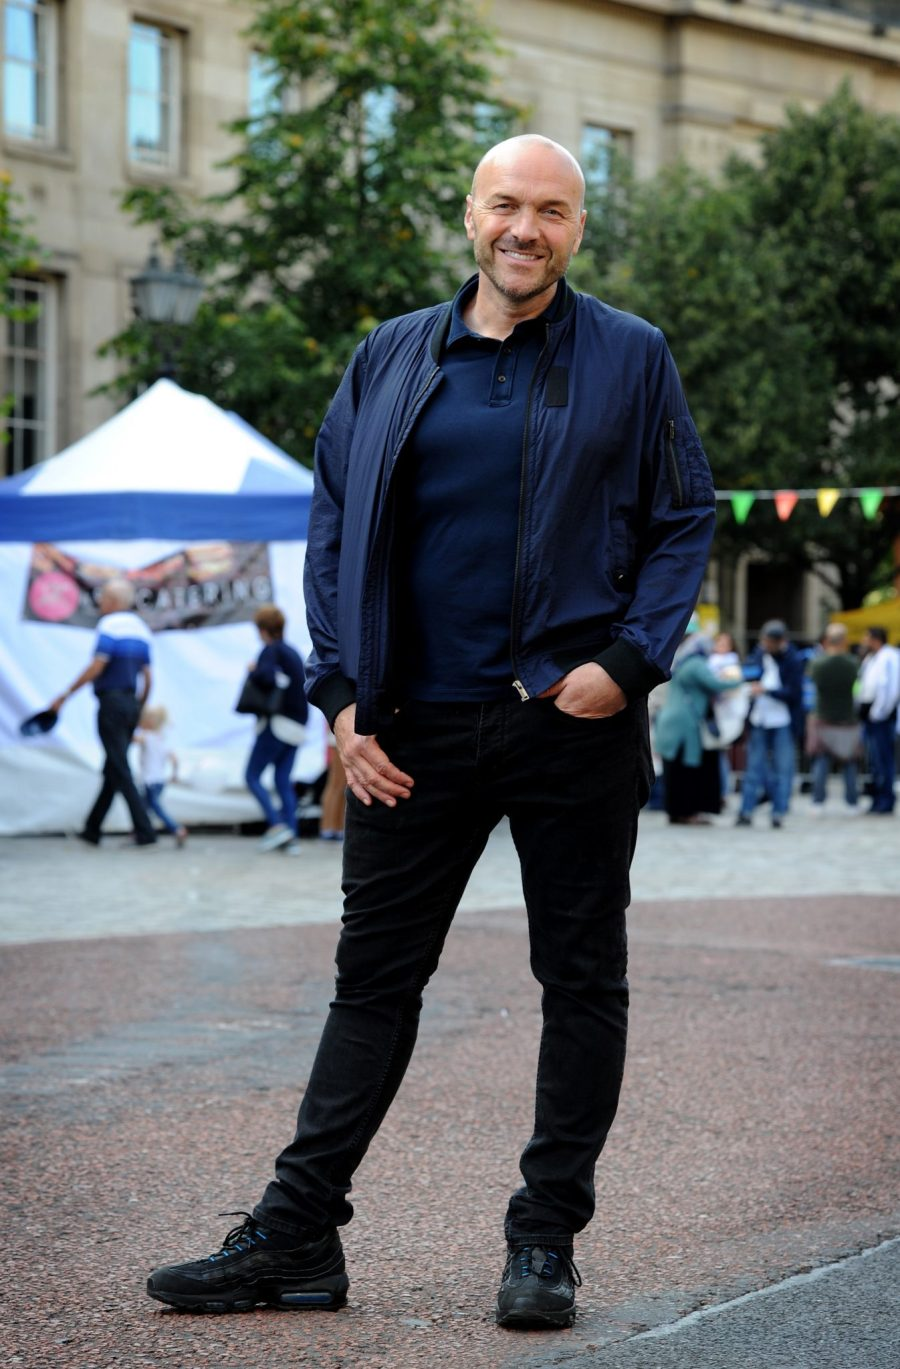 Day two of the annual Bolton Food and Drink Festival. Celebrity chef Simon Rimmer, that star attraction for the day. Picture by Paul Heyes, Saturday August 26, 2017.